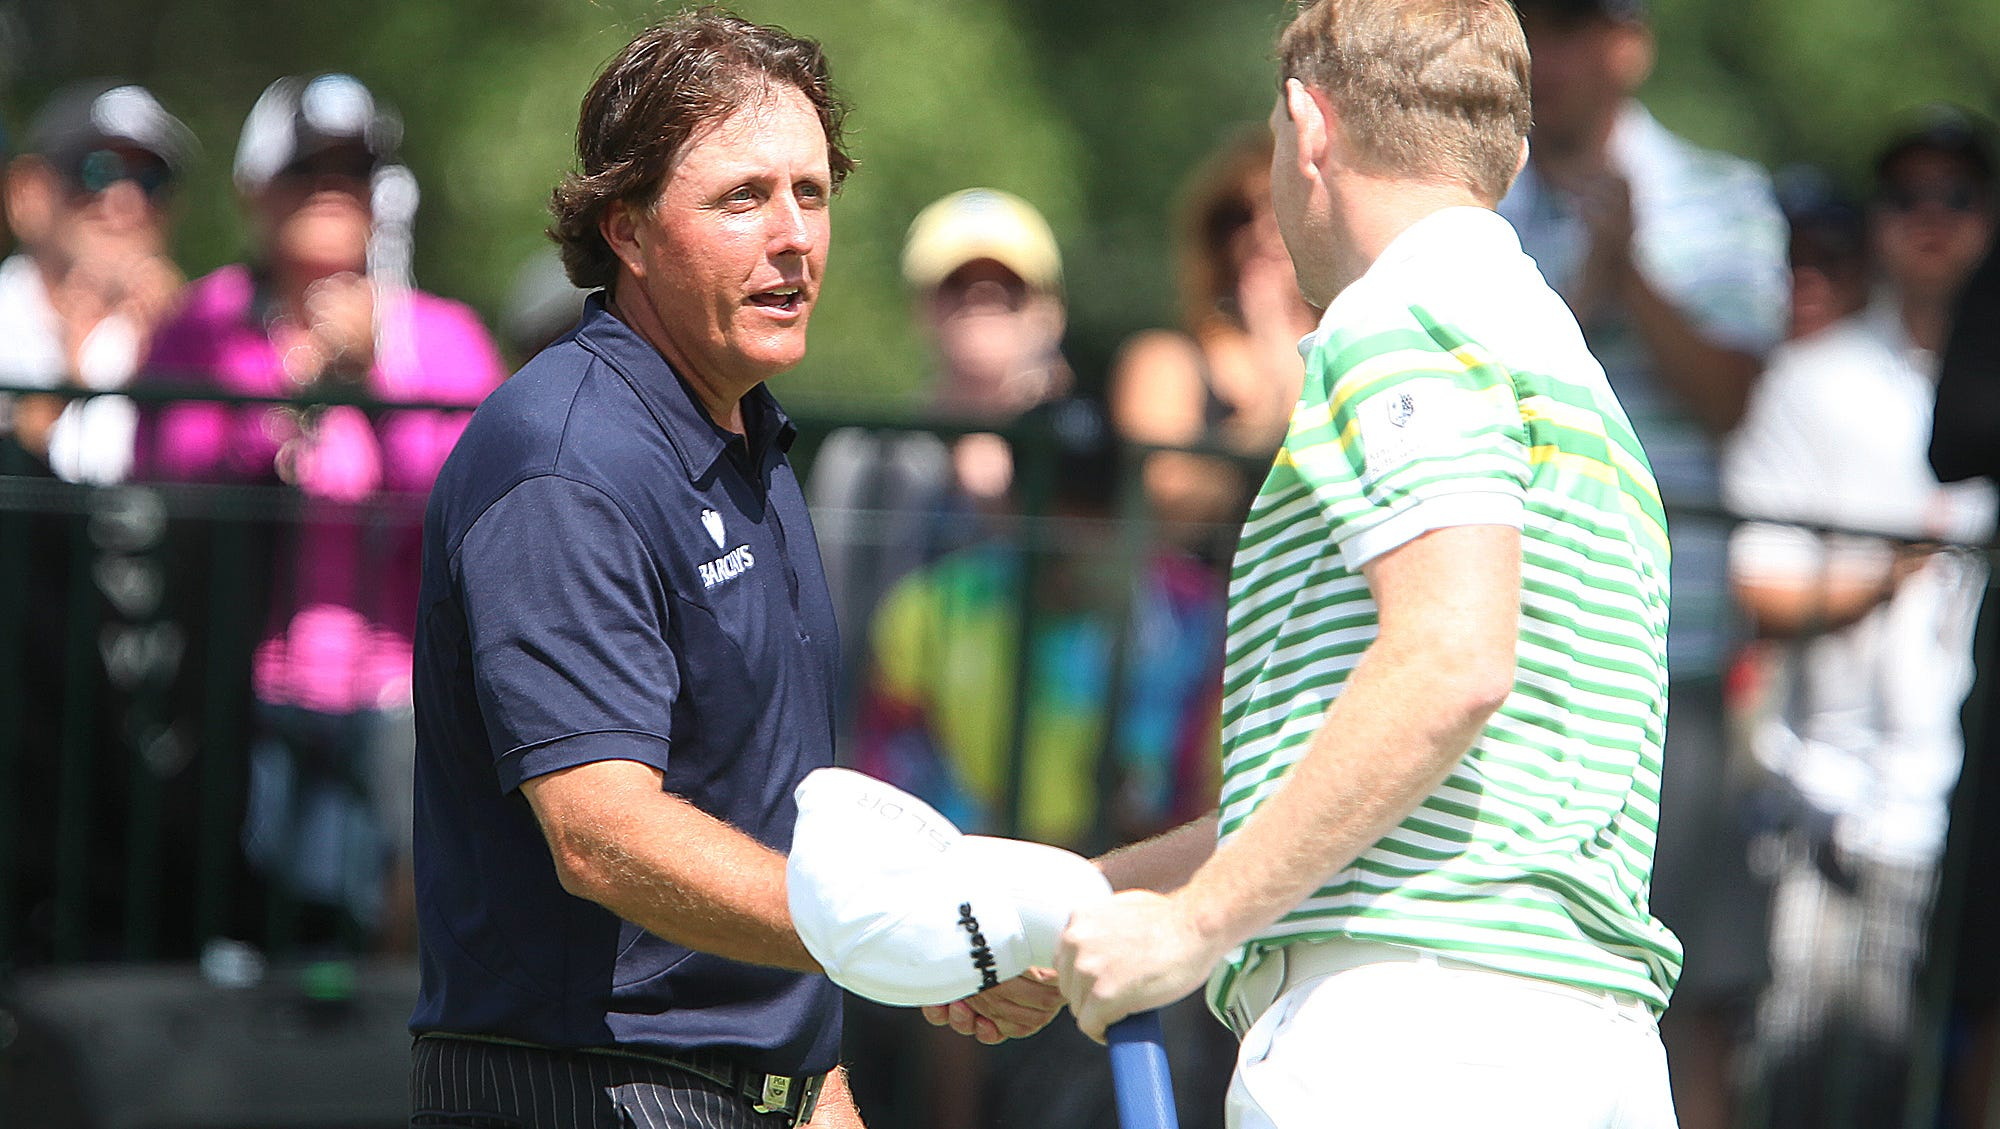 Phil Mickelson shakes hands with Stephen Gallacher after they finished their round on 18 Sunday.